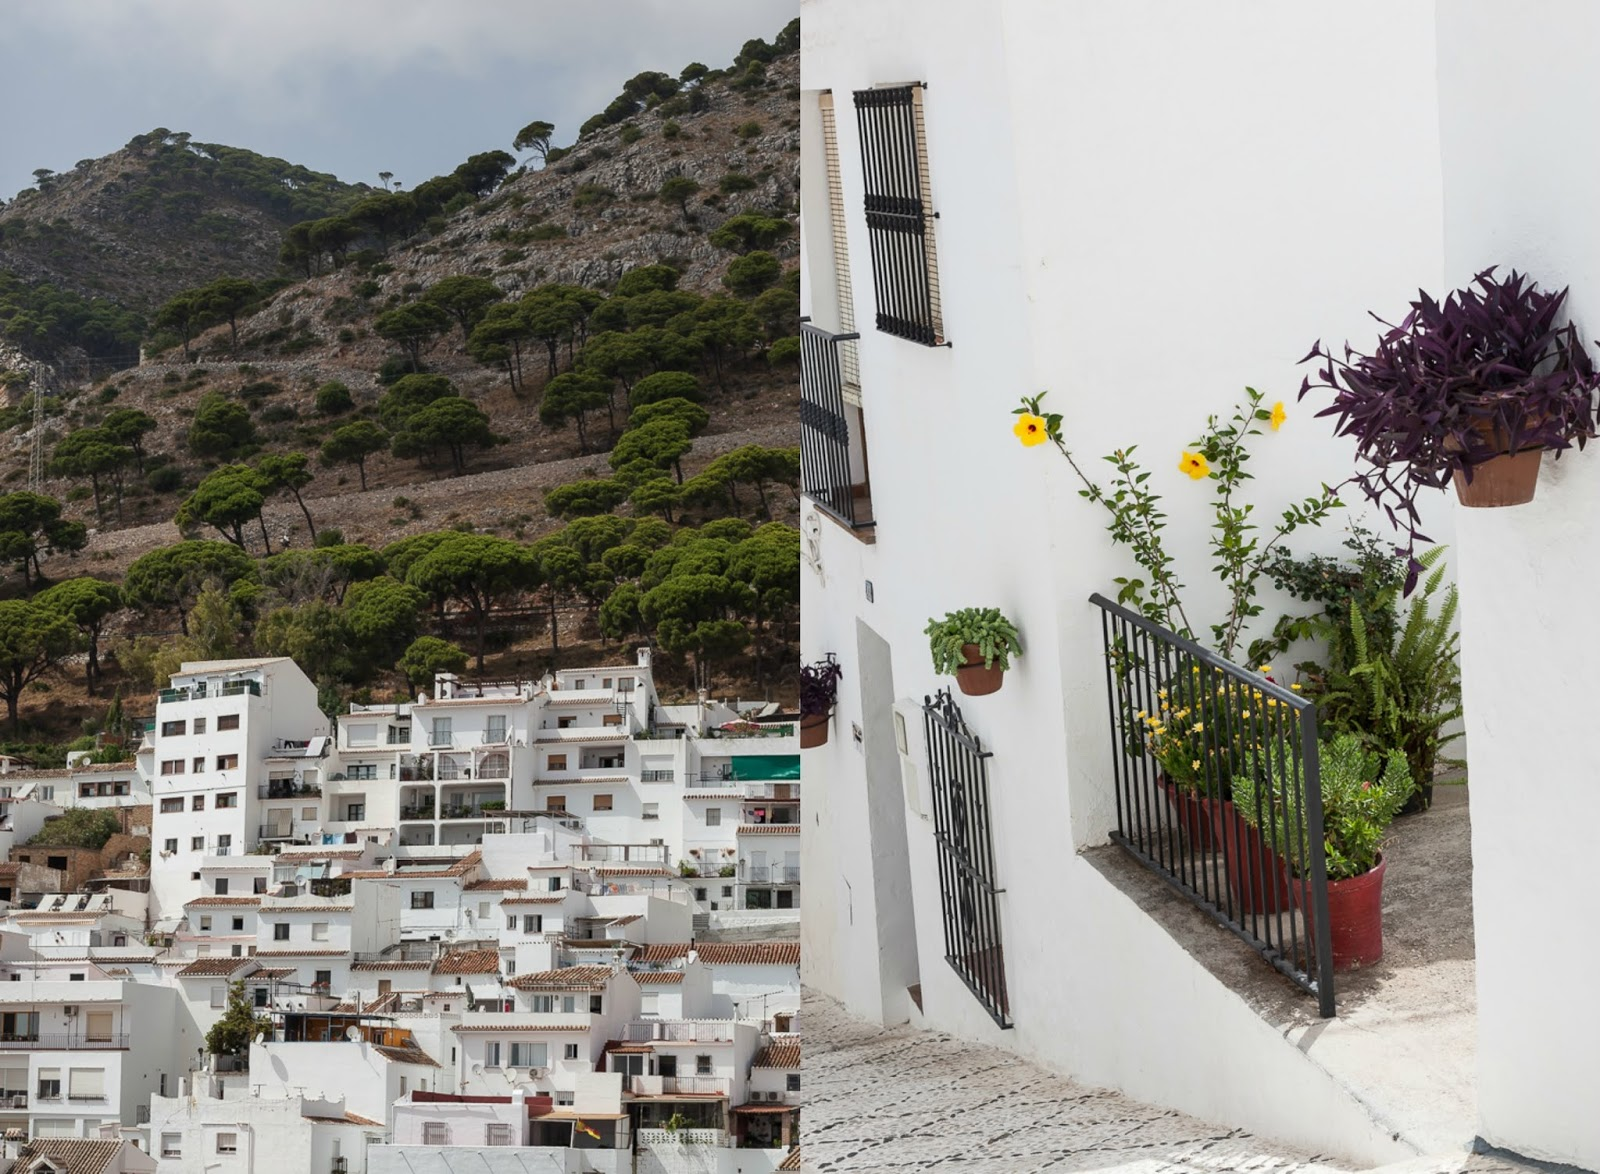 whitewashed houses of Mijas Pueblo